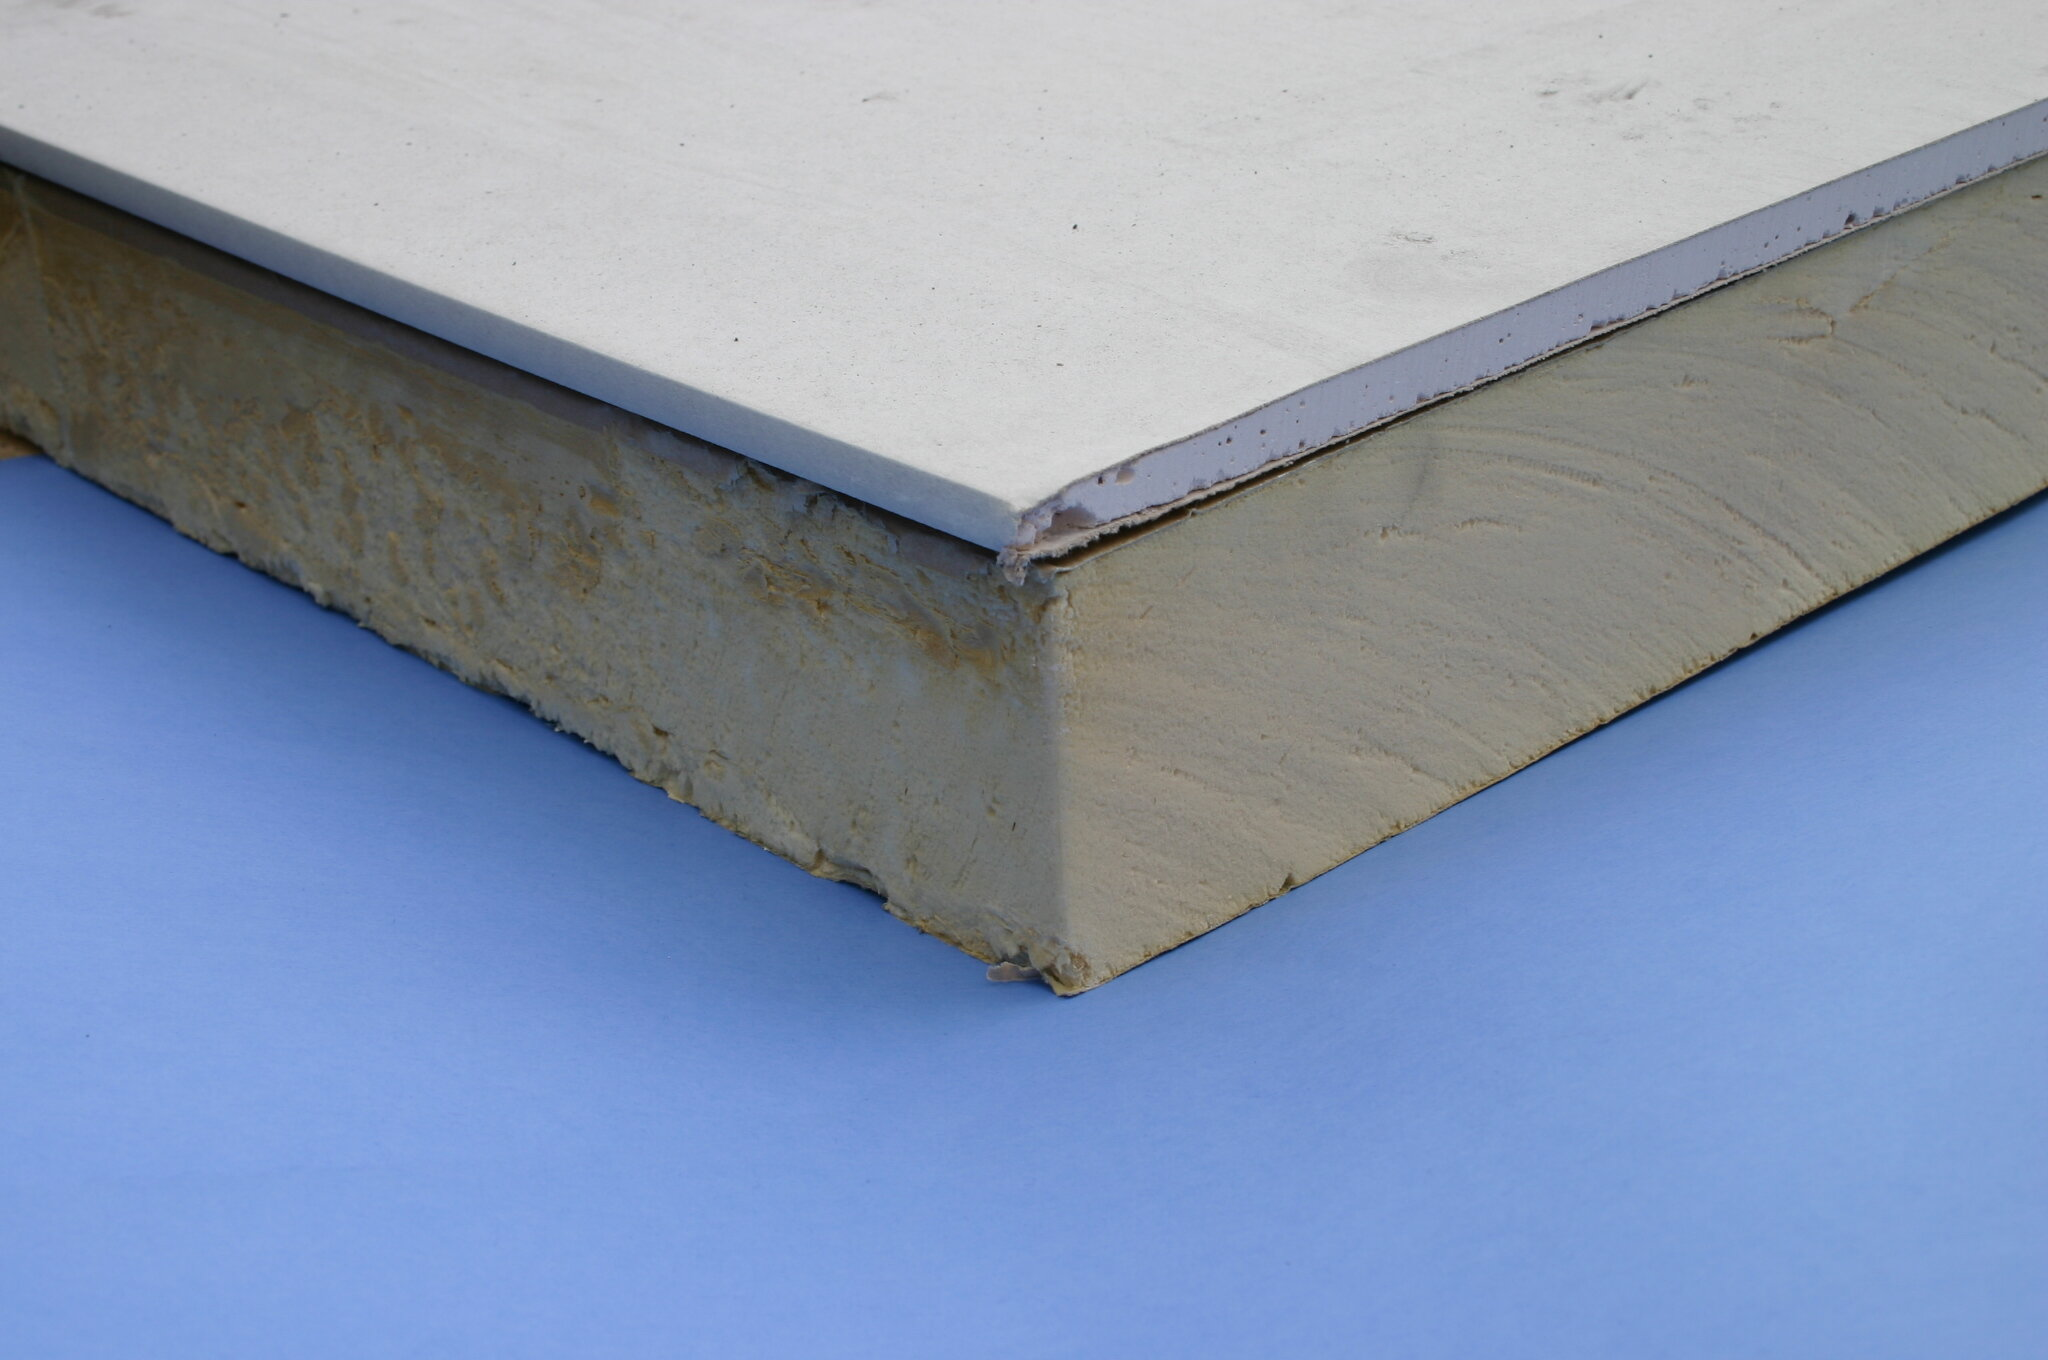 Xtratherm Insulated Plasterboard 103mm - 2400 x 1200mm (Mechanical Fixing)